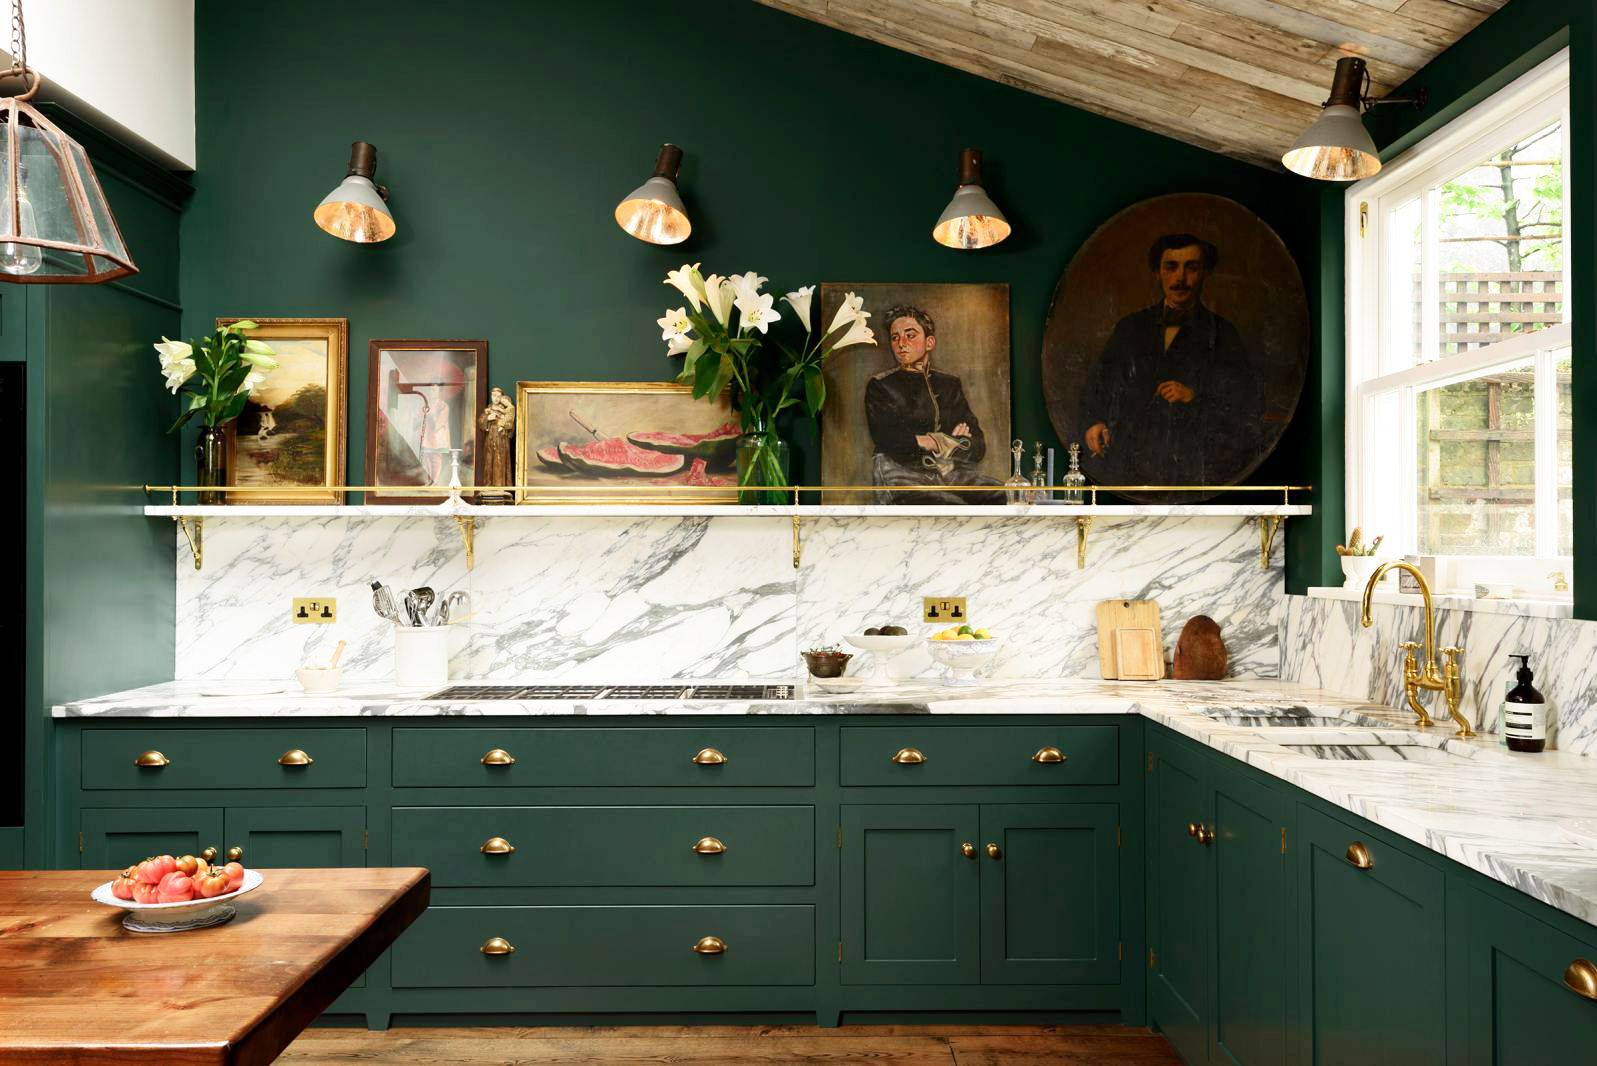 80 kitchens thatll make you want to redo yours